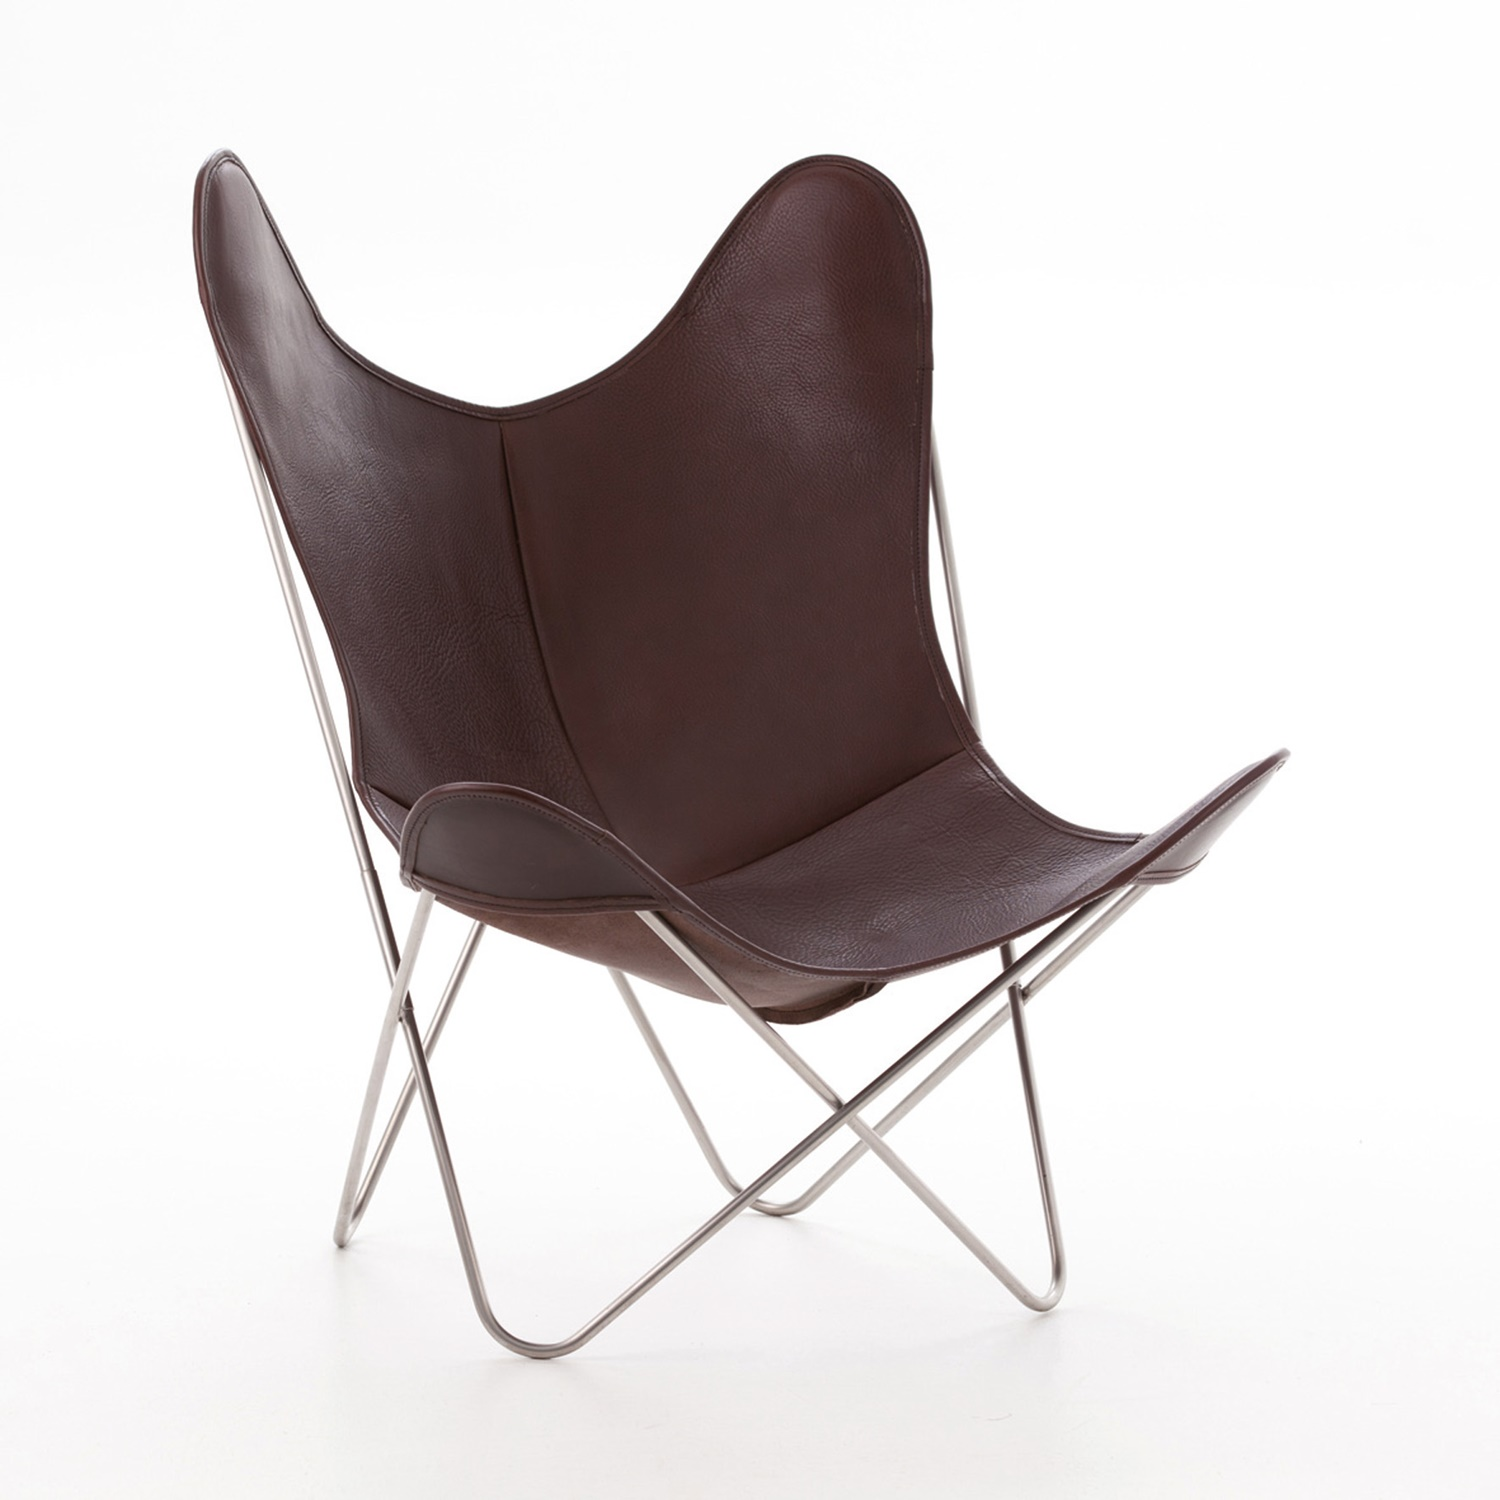 aa by airborne butterfly chair le chocolat leder. Black Bedroom Furniture Sets. Home Design Ideas